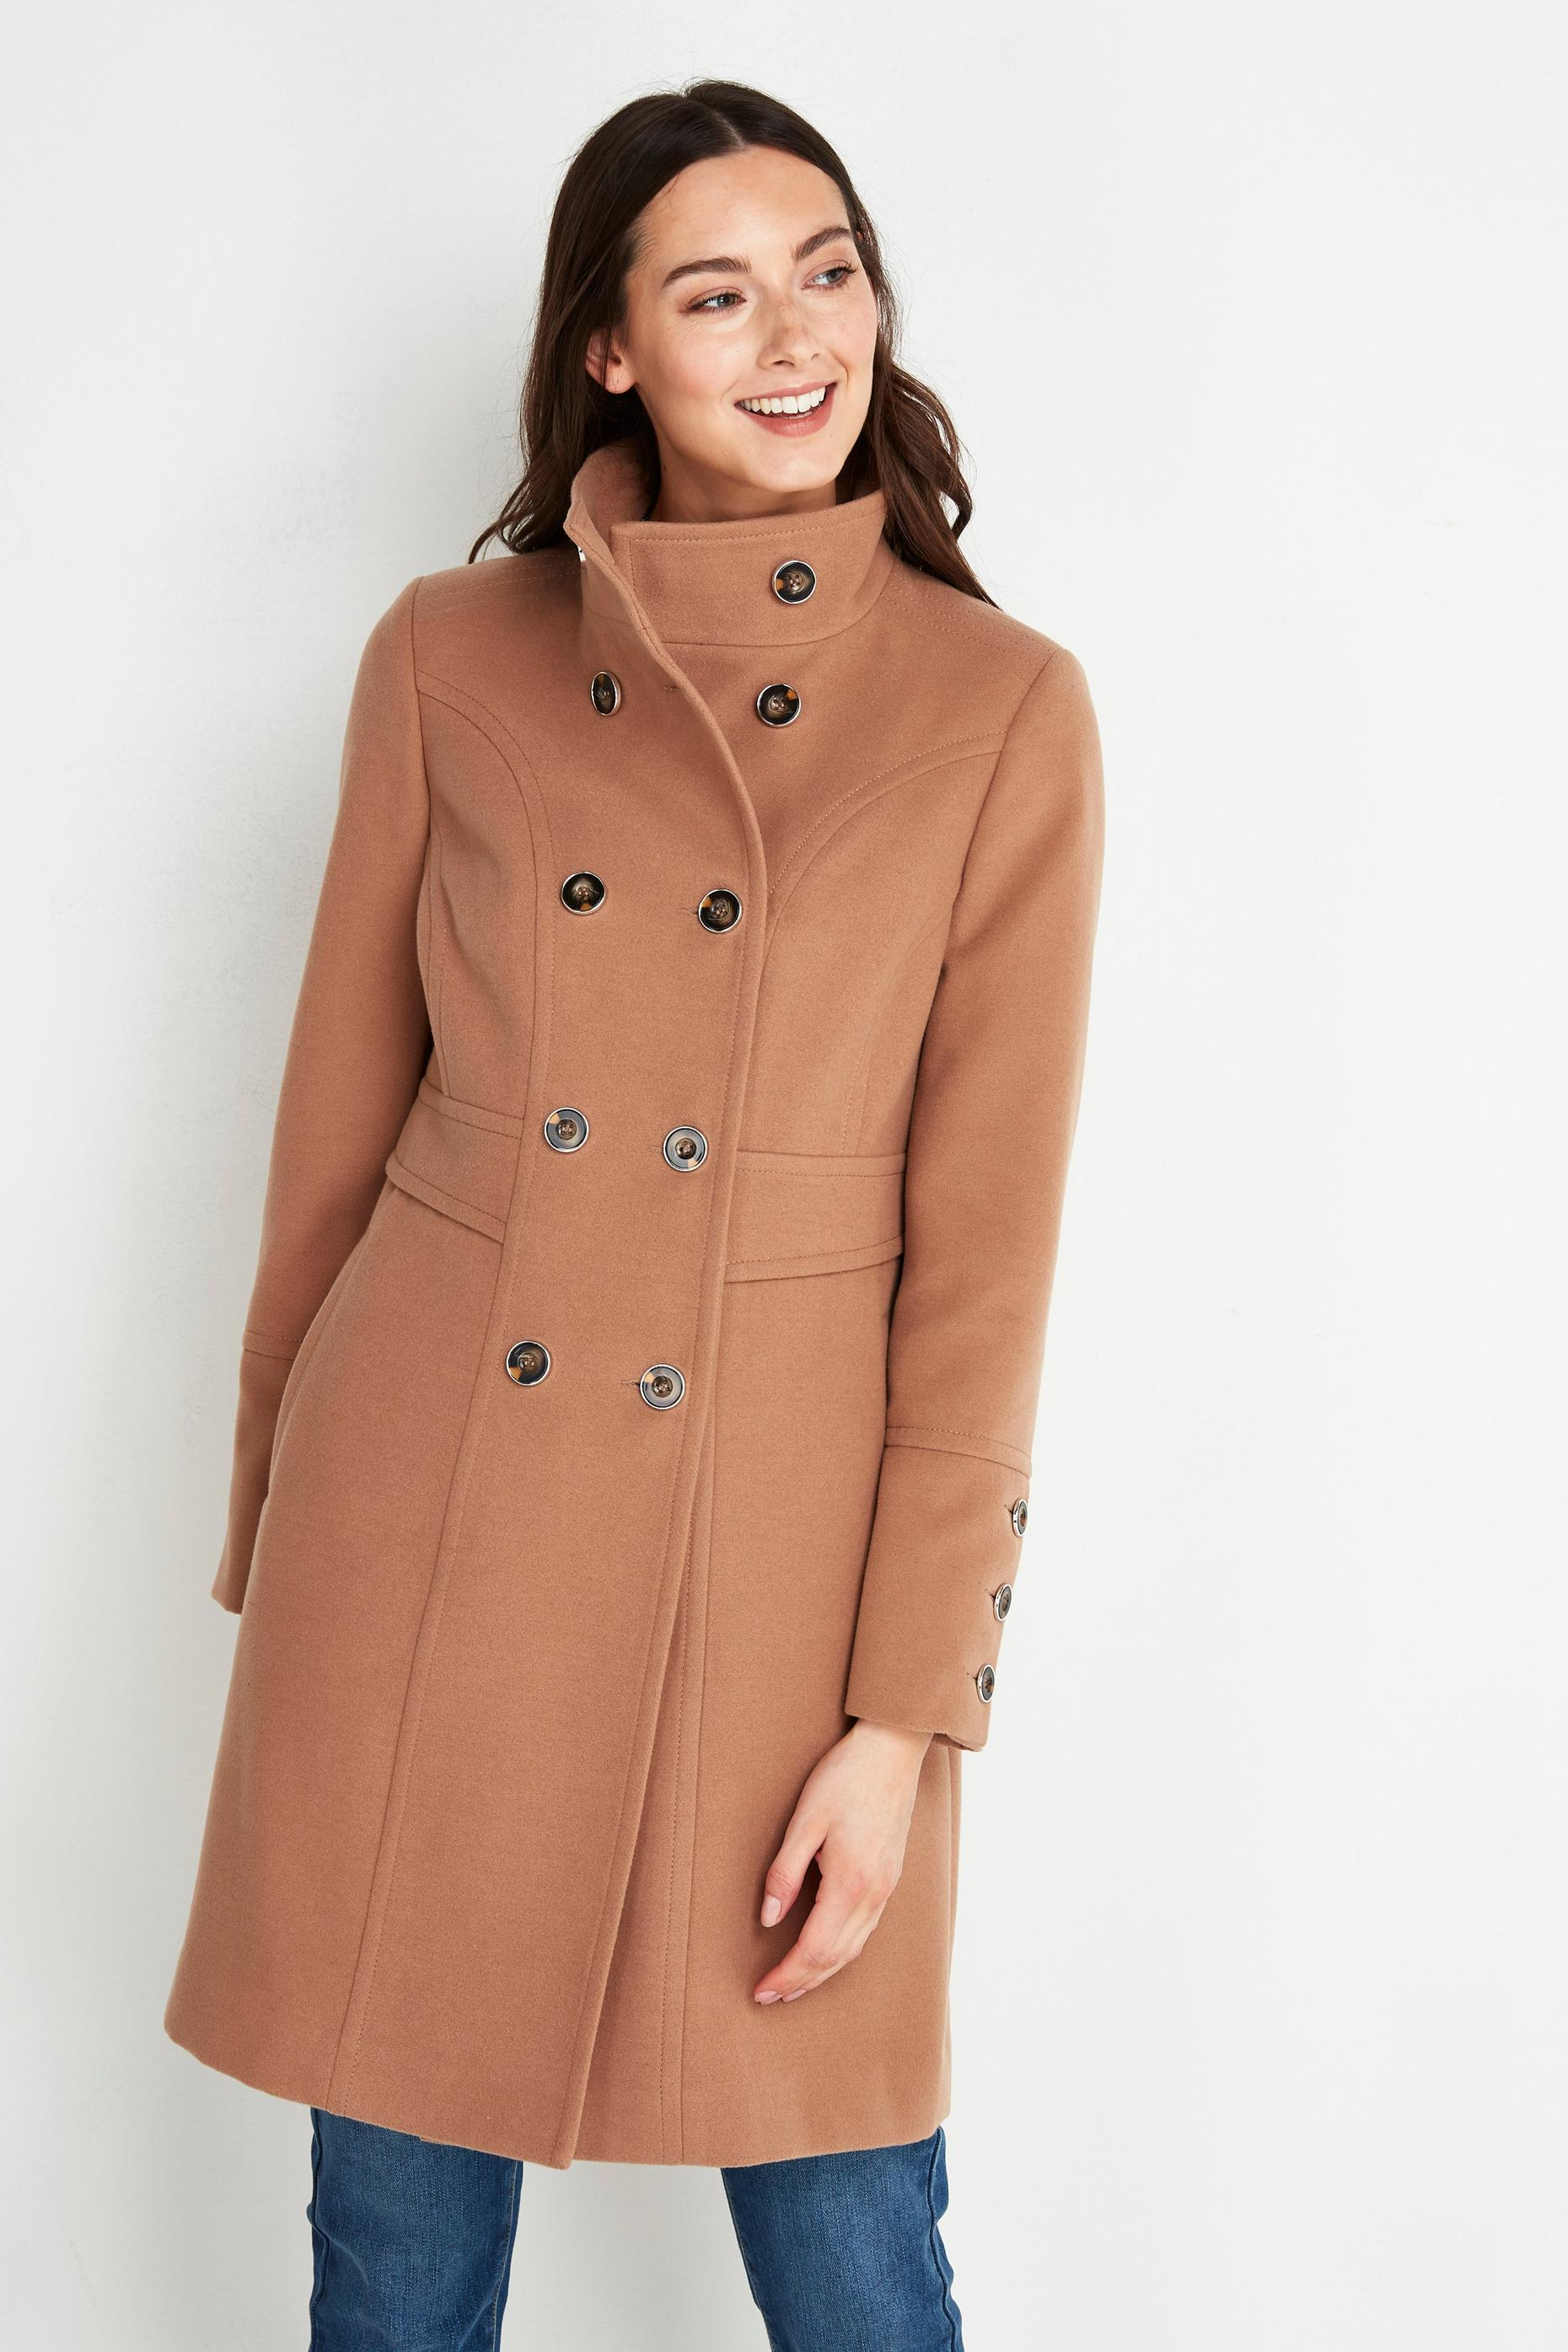 PETITE Camel Double Breasted Coat